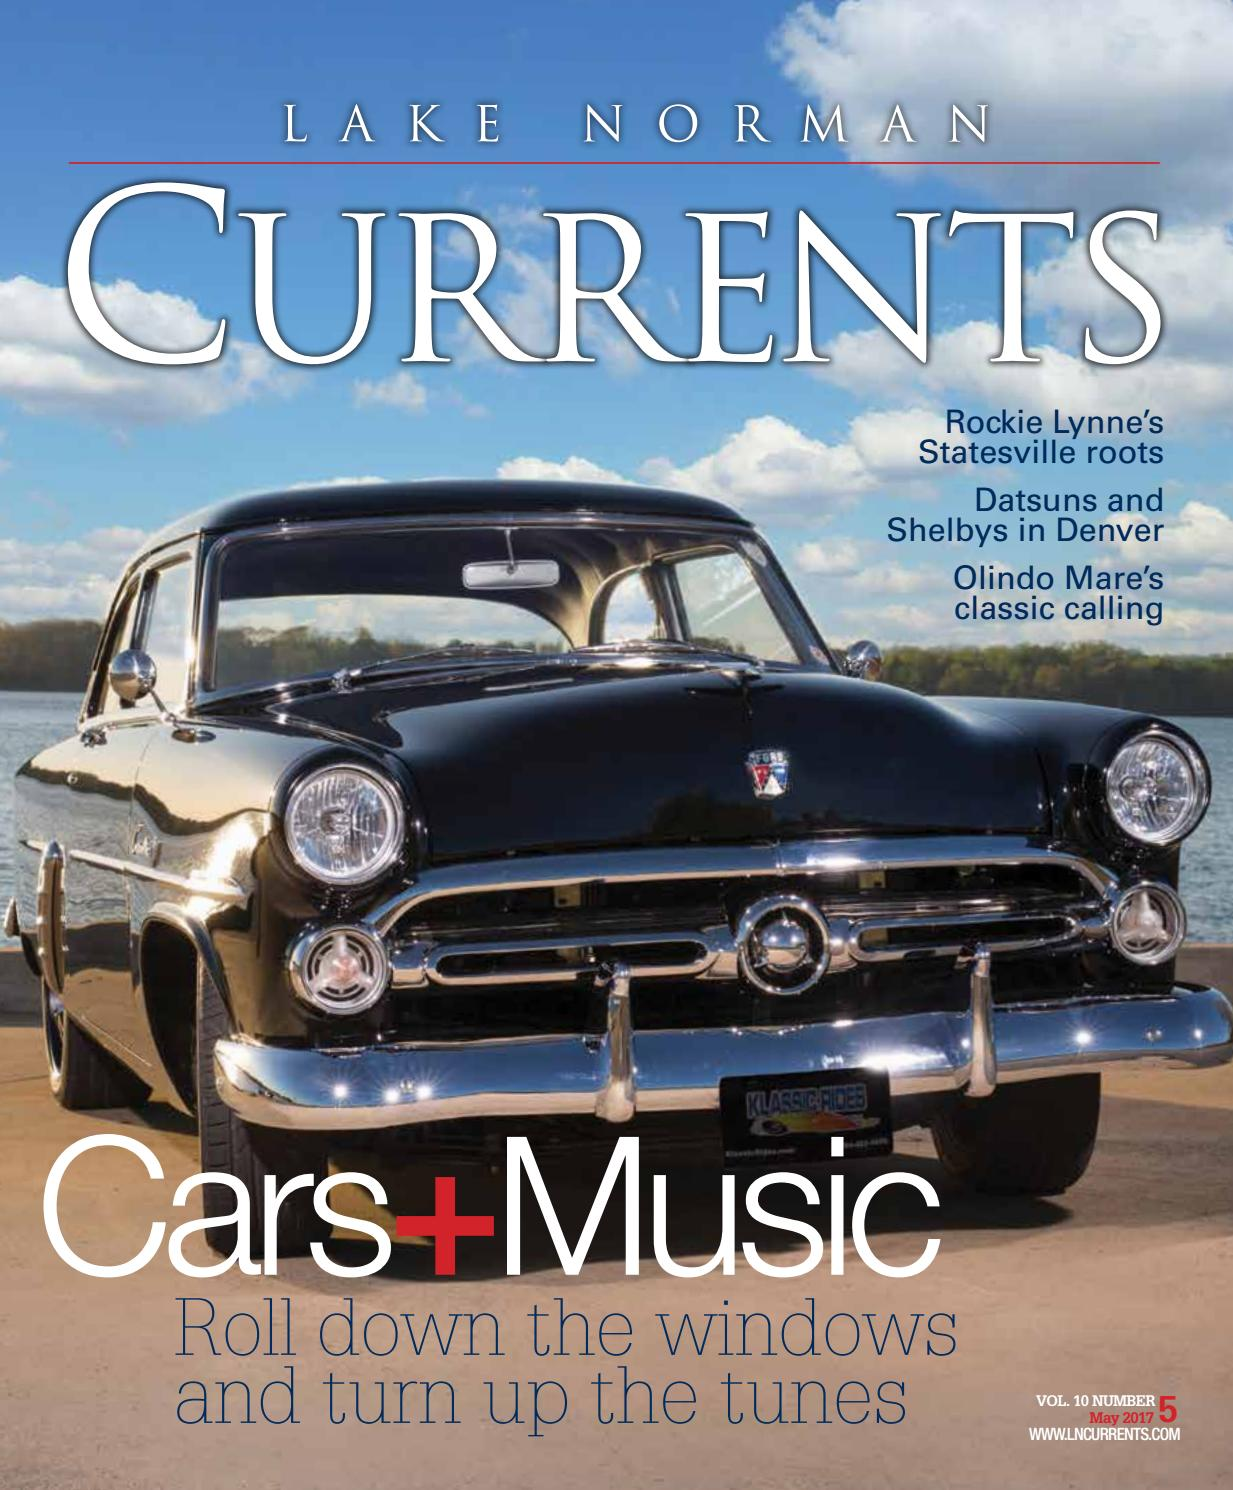 Lake Norman Currents Magazine May 2017 By Lake Norman Currents Issuu